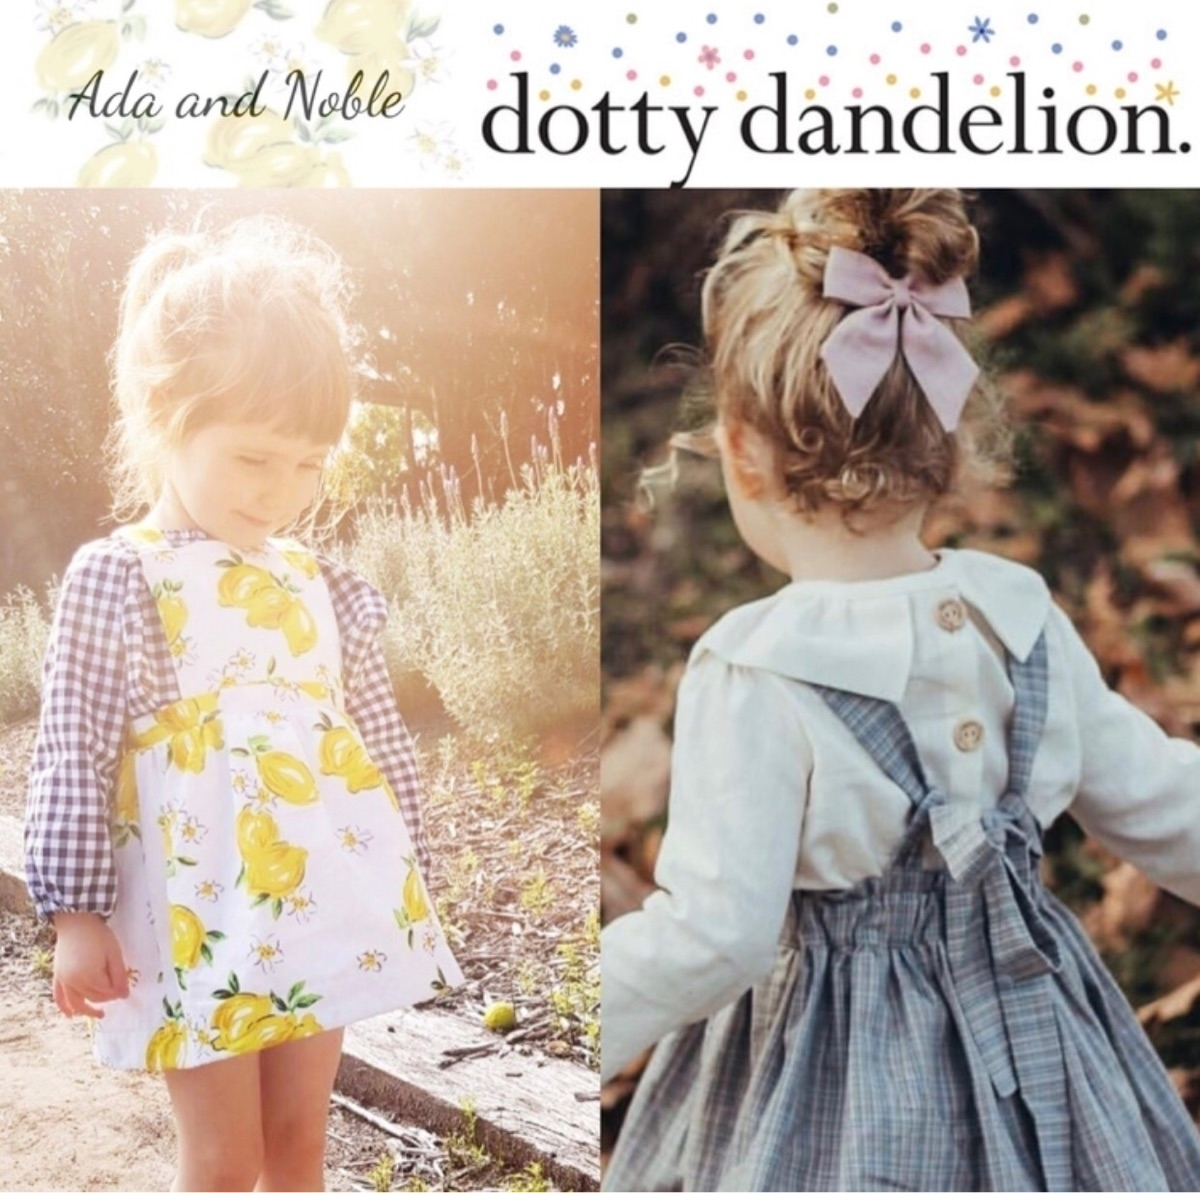 GIVEAWAY TIME! teamed bring awe - dotty_dandelion | ello